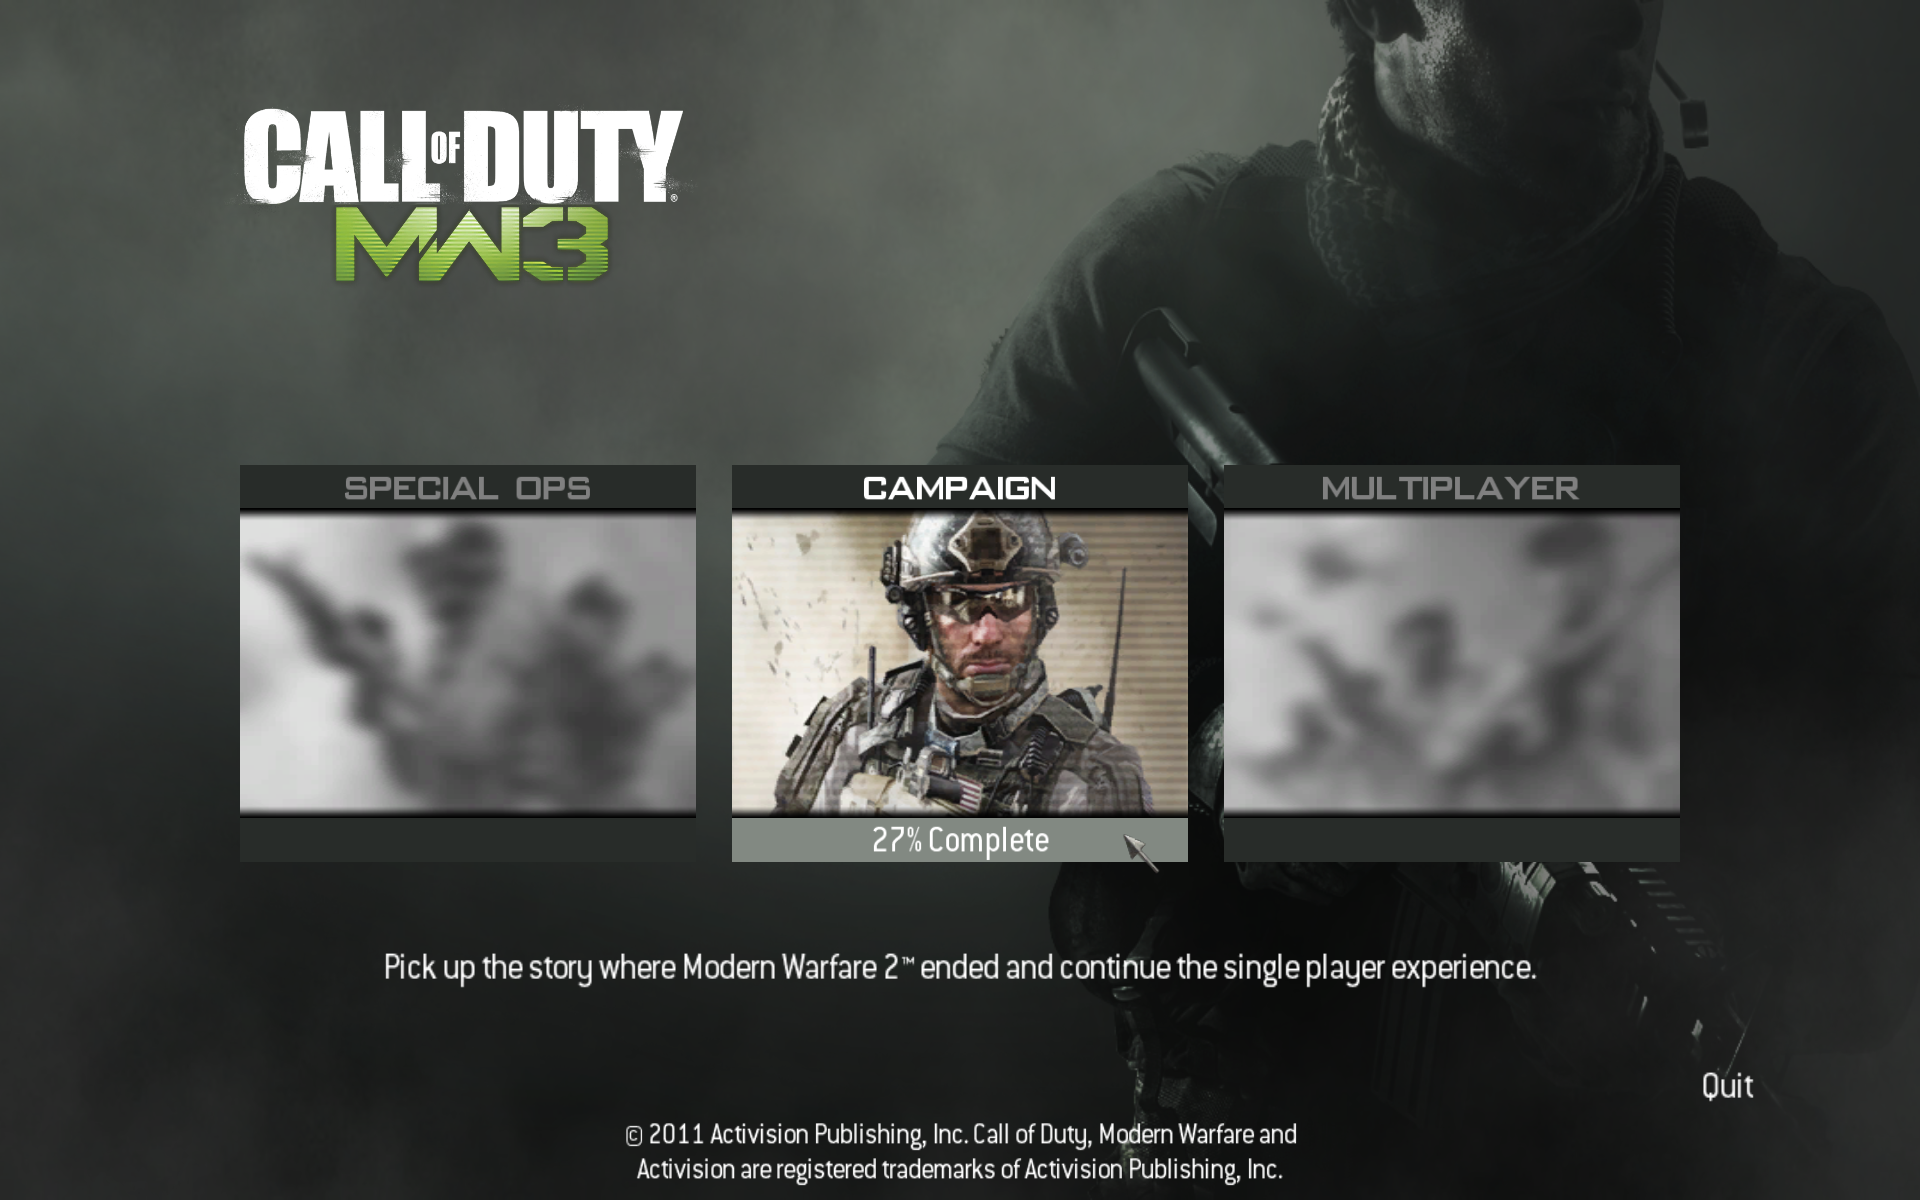 Call of Duty: MW3 Windows Main menu (consists of Special Ops, Campaign and Multiplayer).